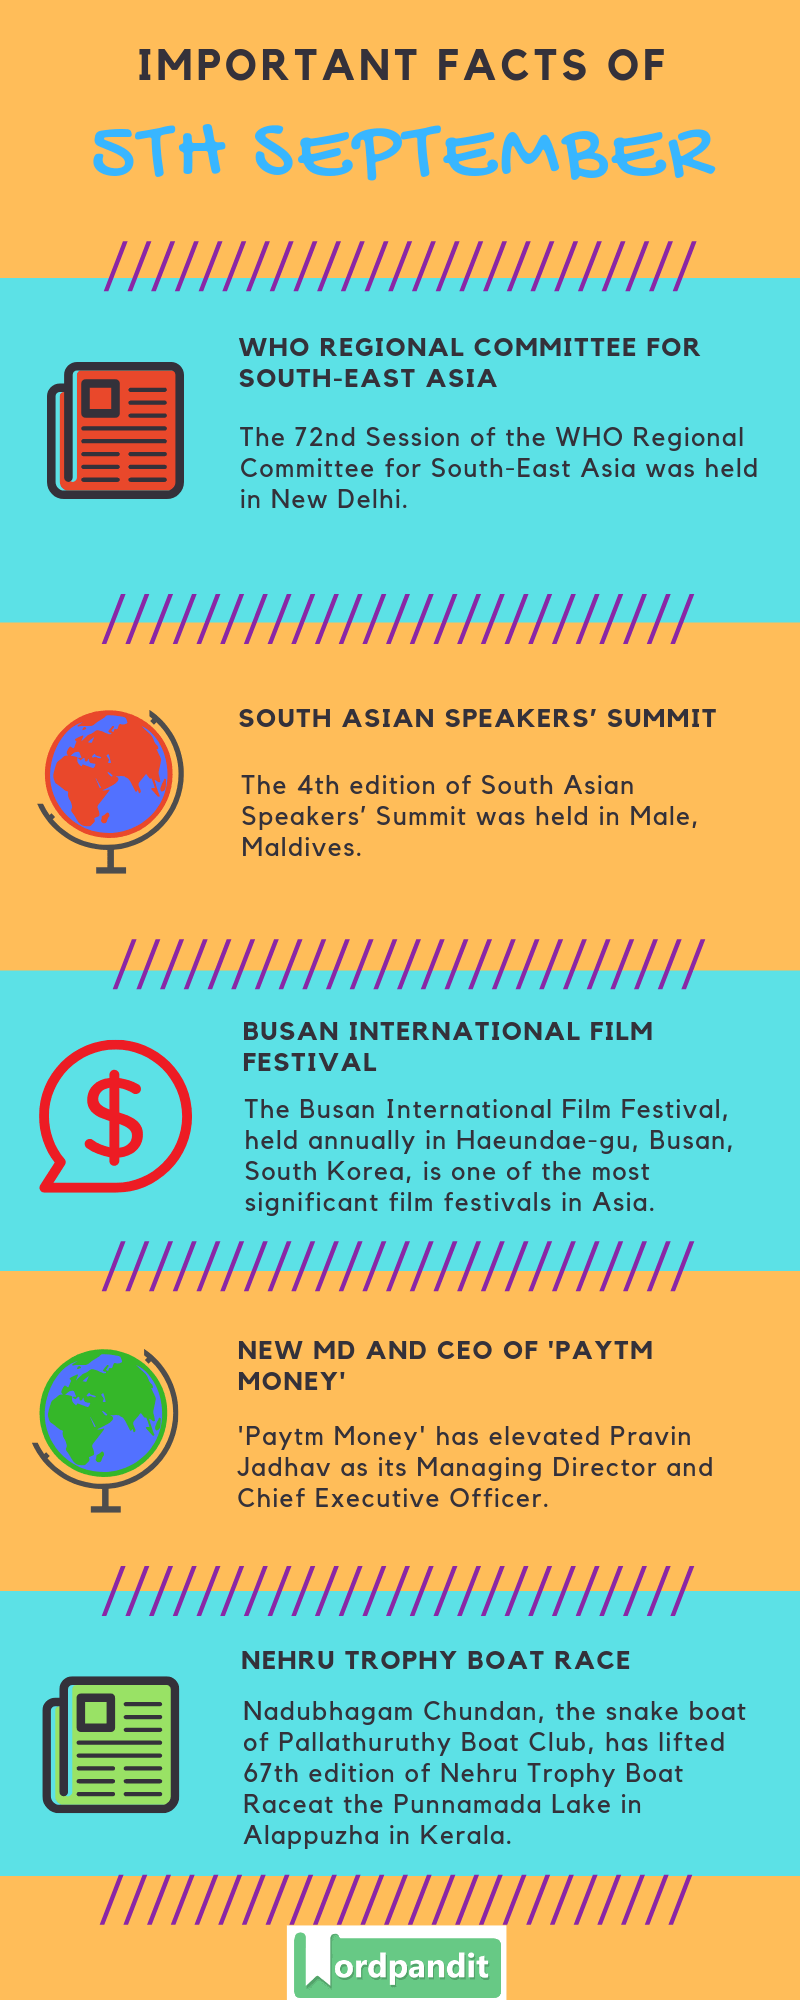 Daily Current Affairs 5 September 2019 Current Affairs Quiz 5 September 2019 Current Affairs Infographic